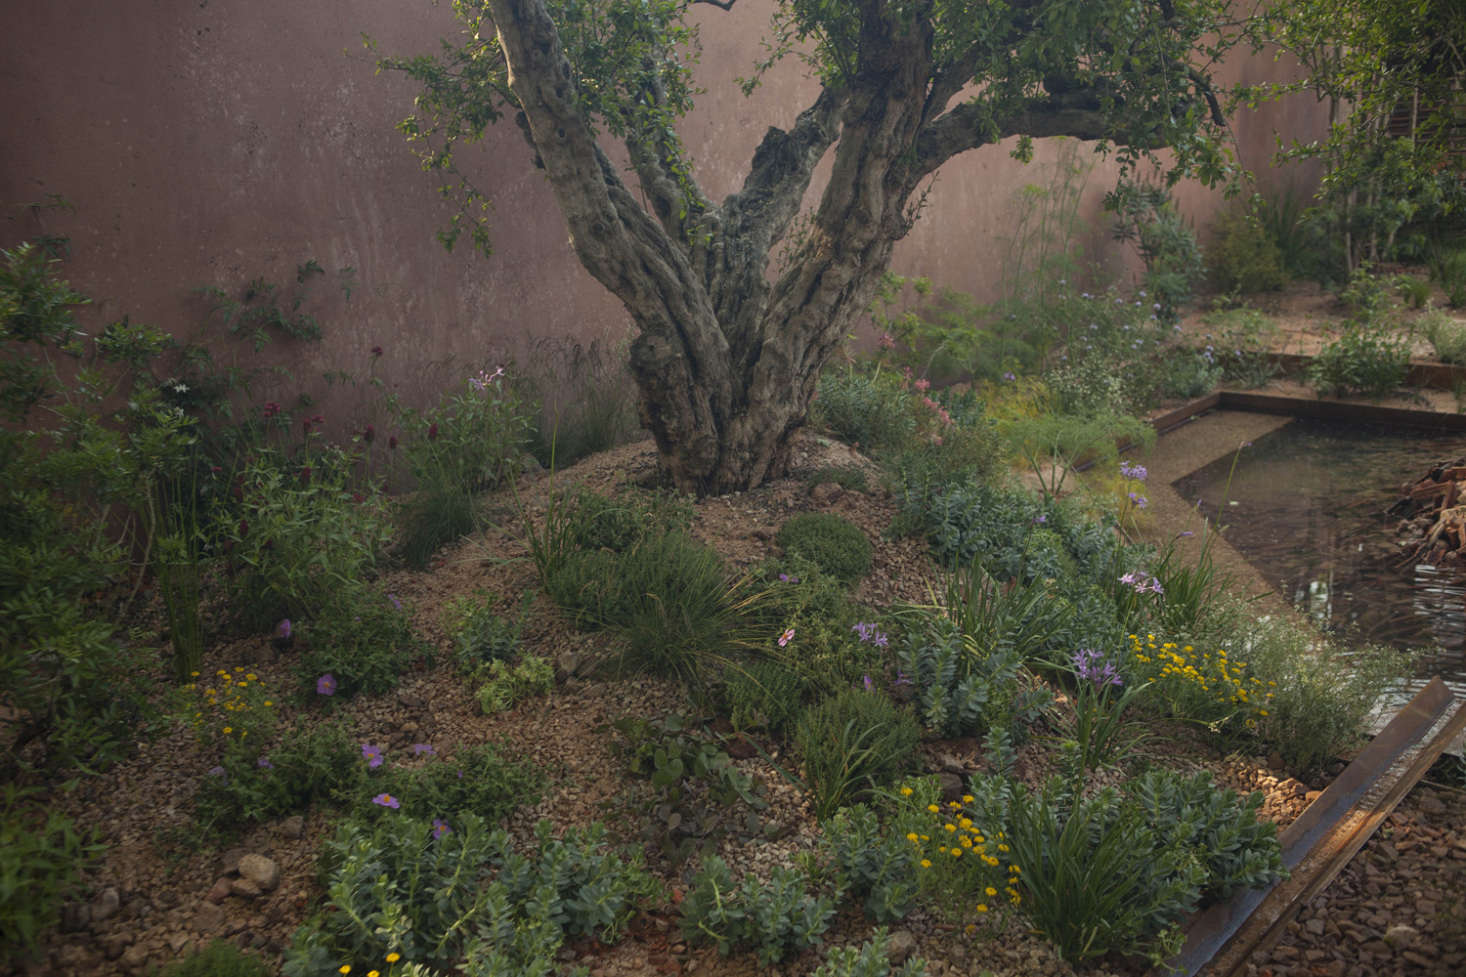 An established pomegranate tree in Sarah Price&#8